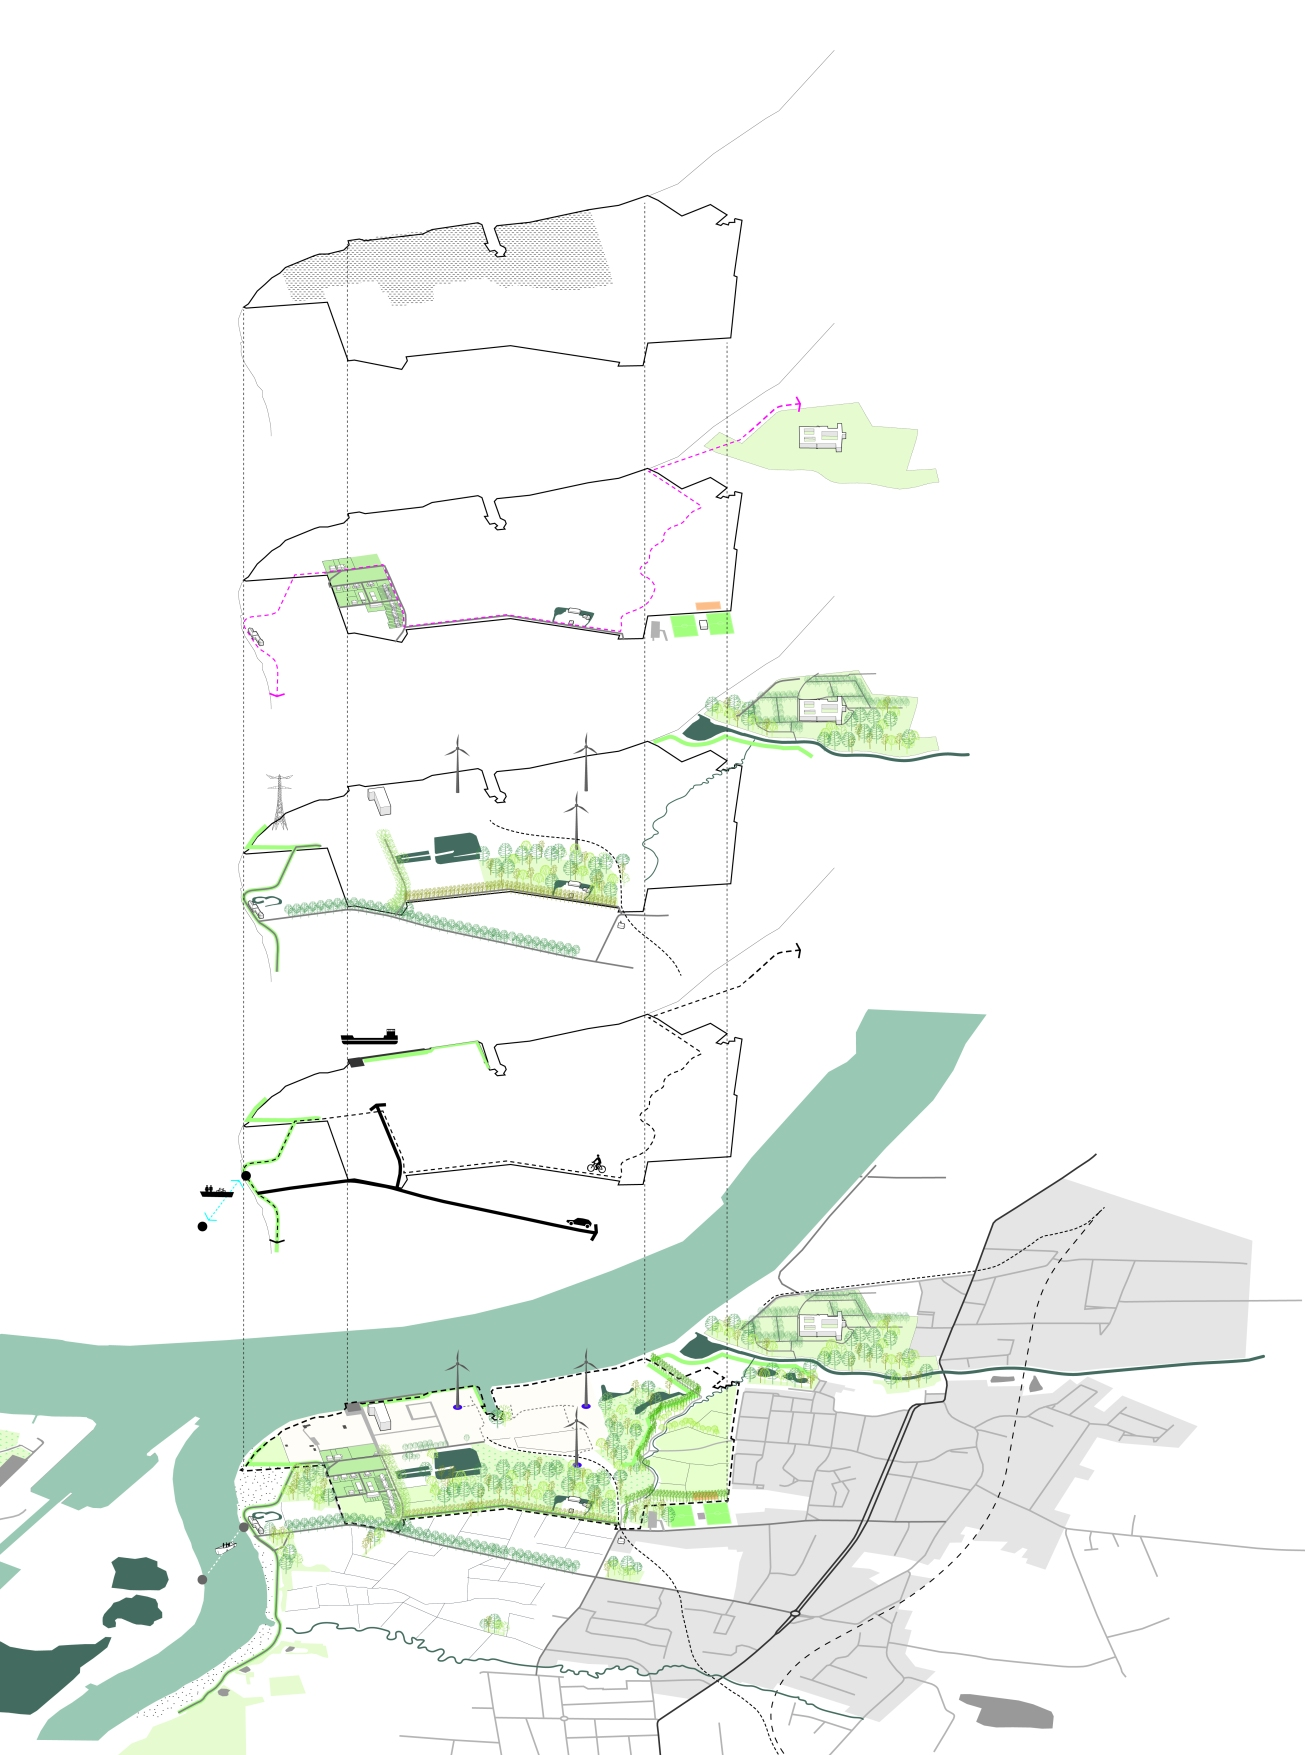 Off Electrabelsite 20160126 Analyse site (BVH) 3D-01